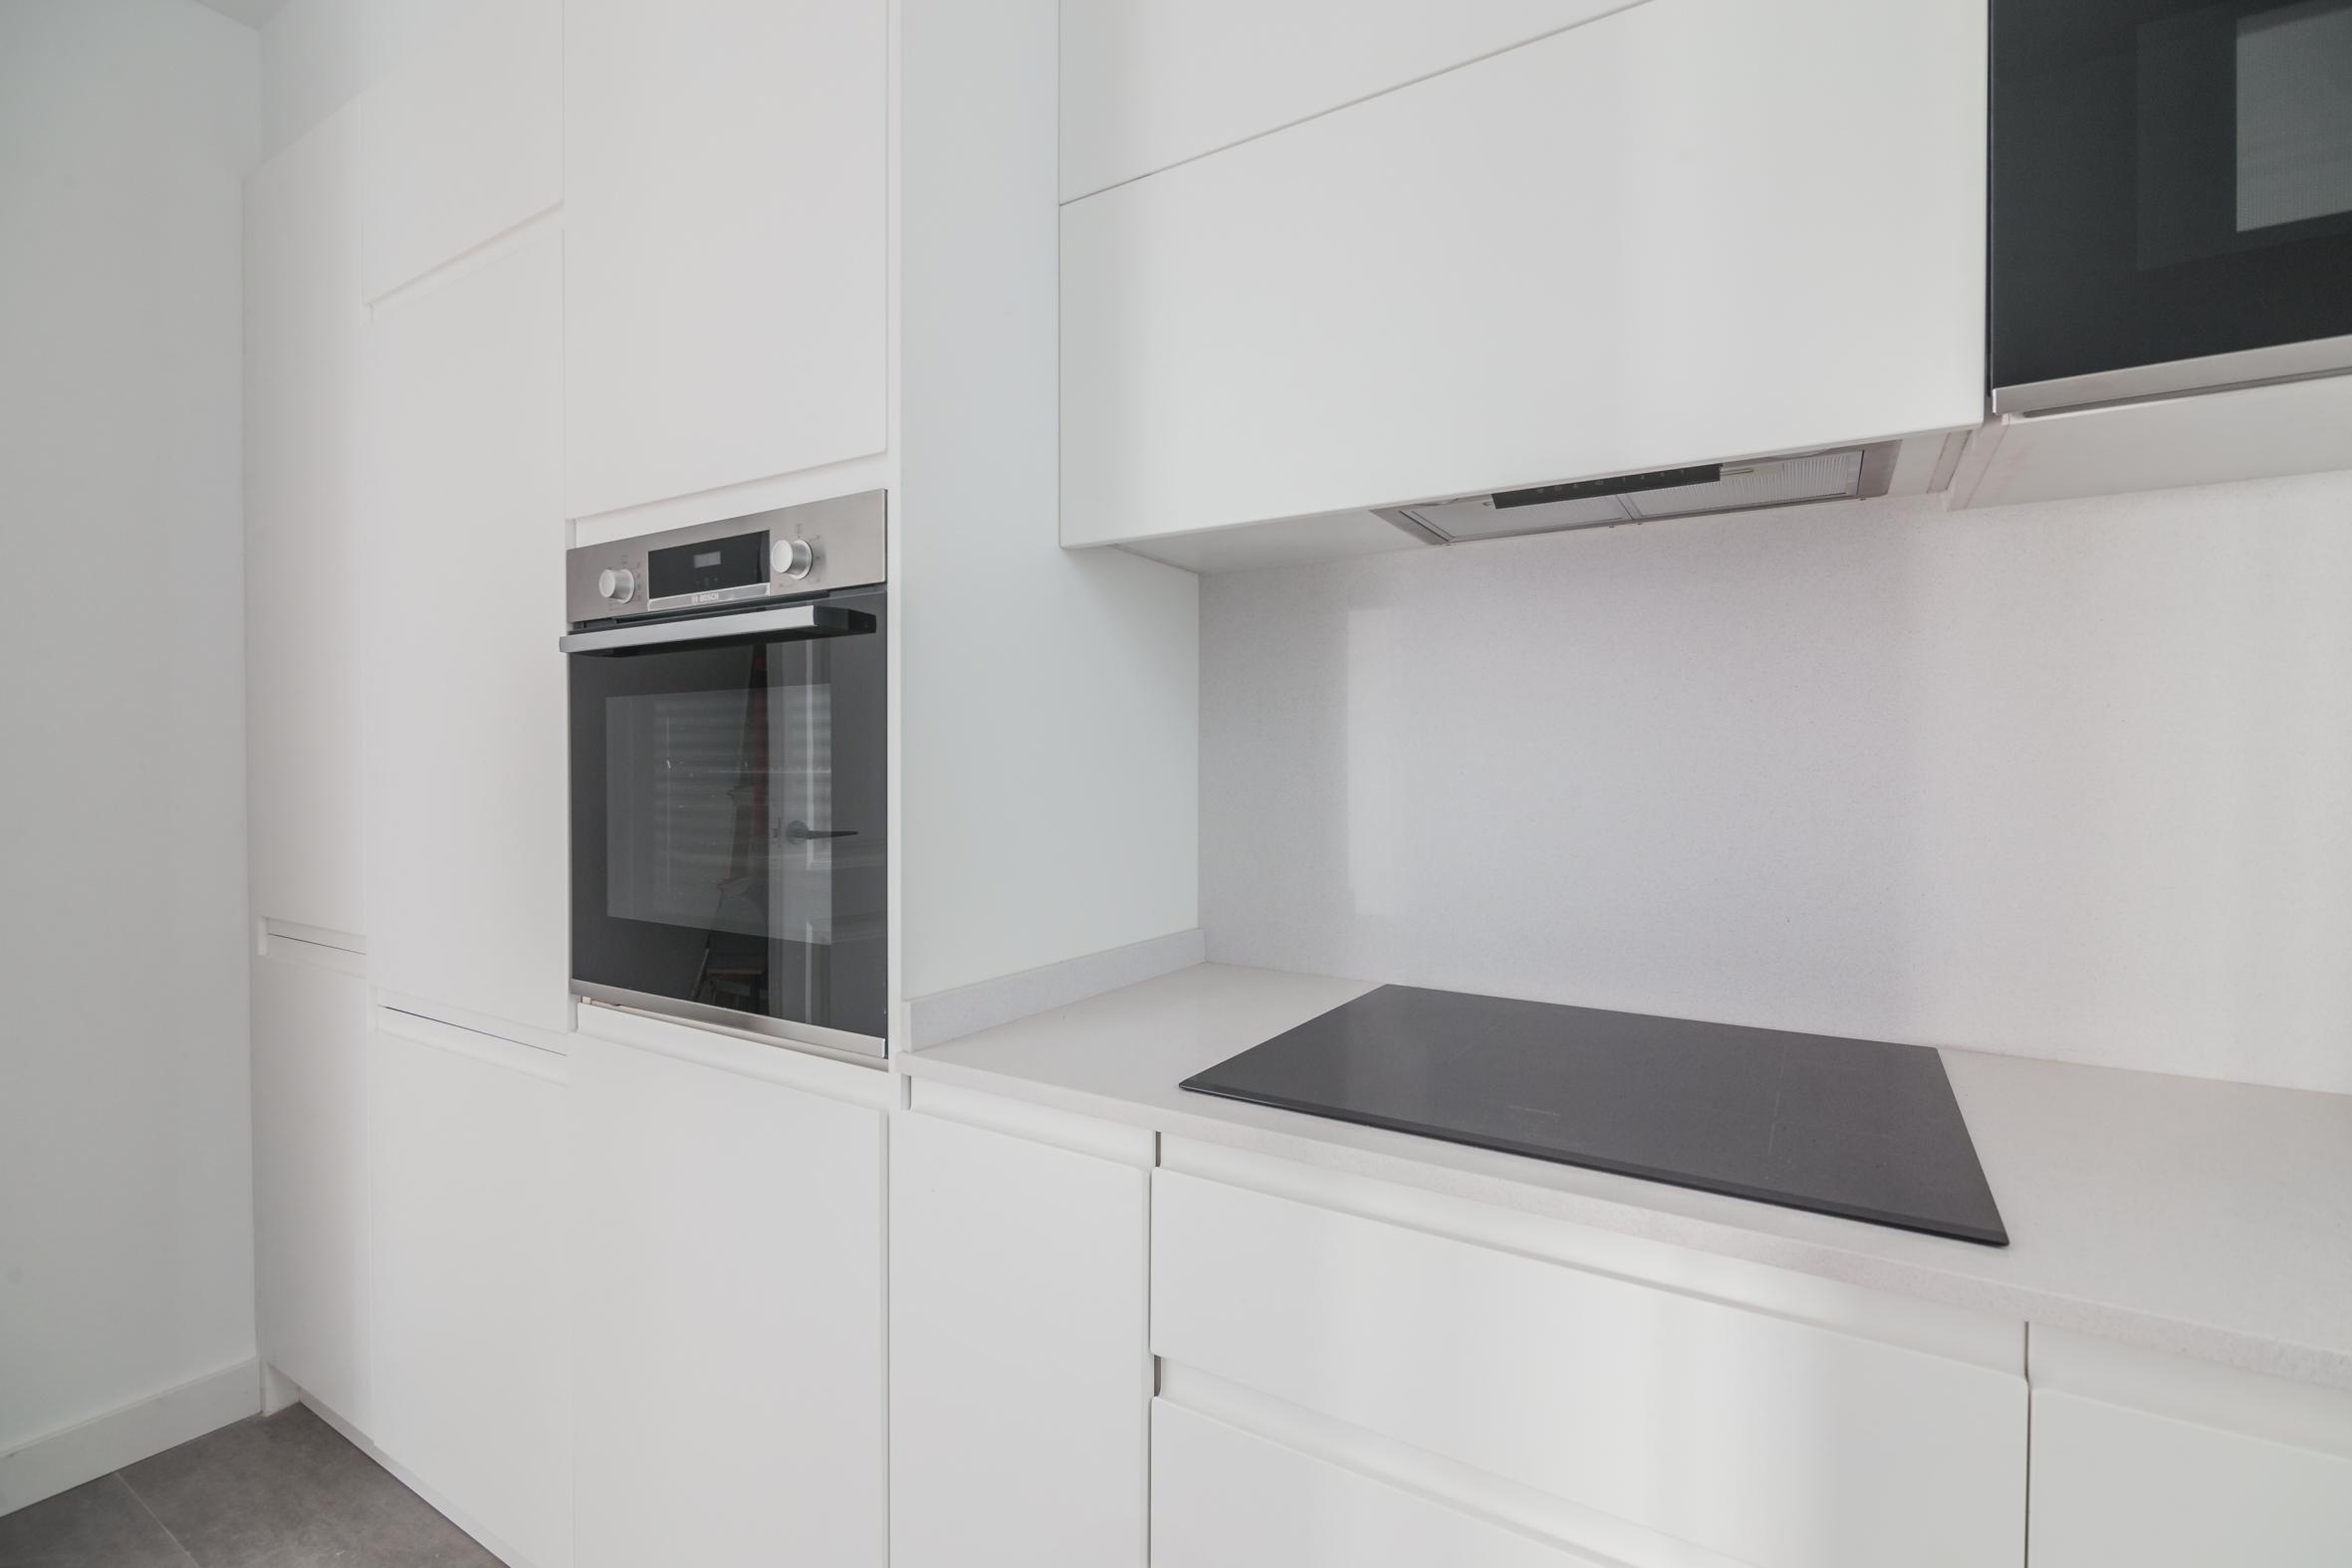 244010 Flat for sale in Ciutat Vella, Barri Gótic 6